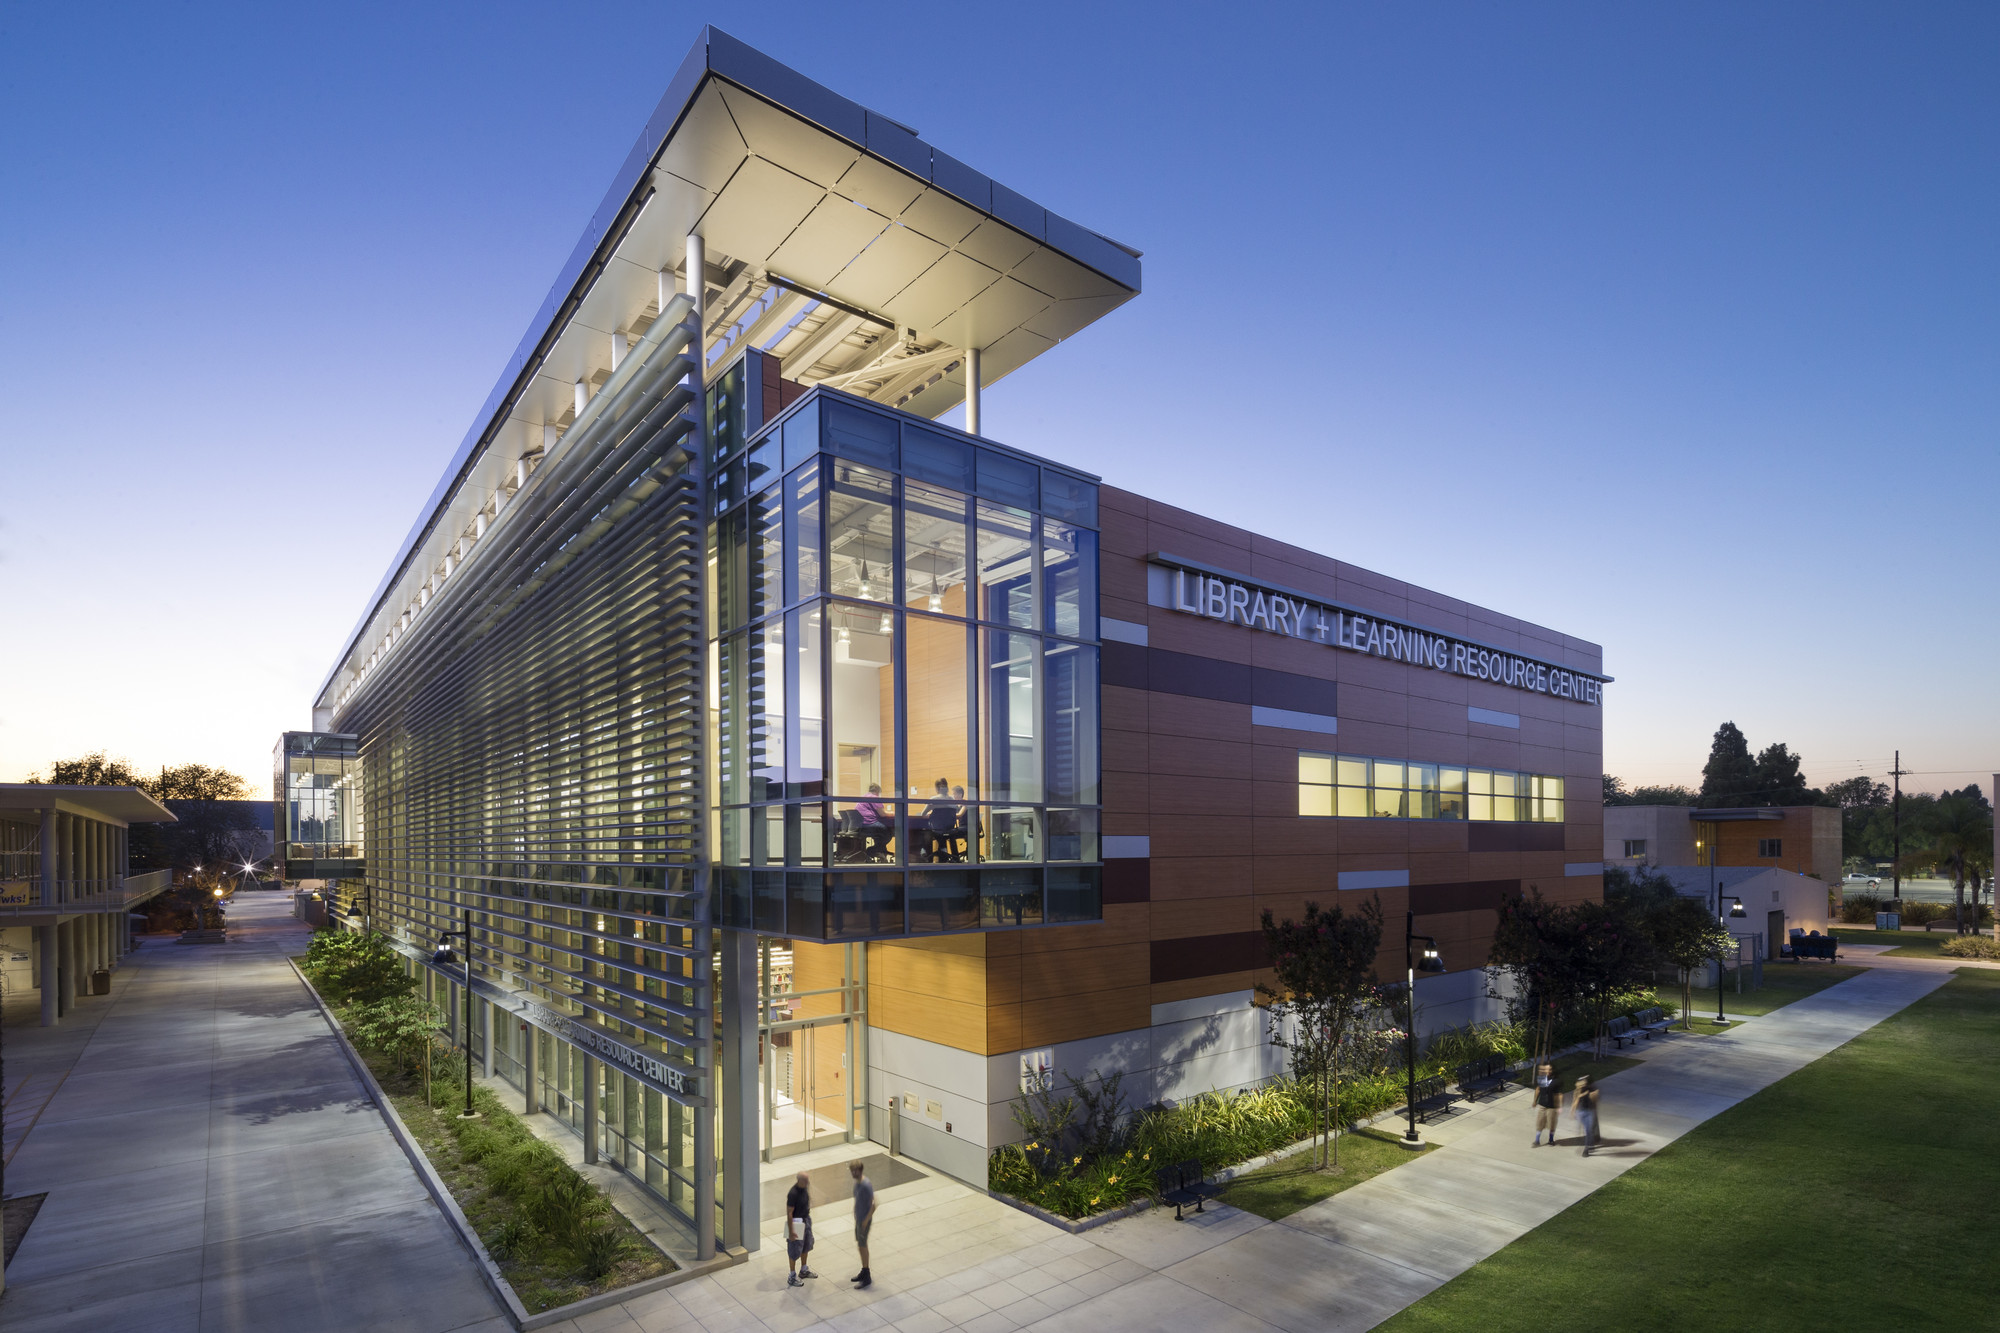 Harbor College Library And Learning Resource Center Image C Brandon Shigeta